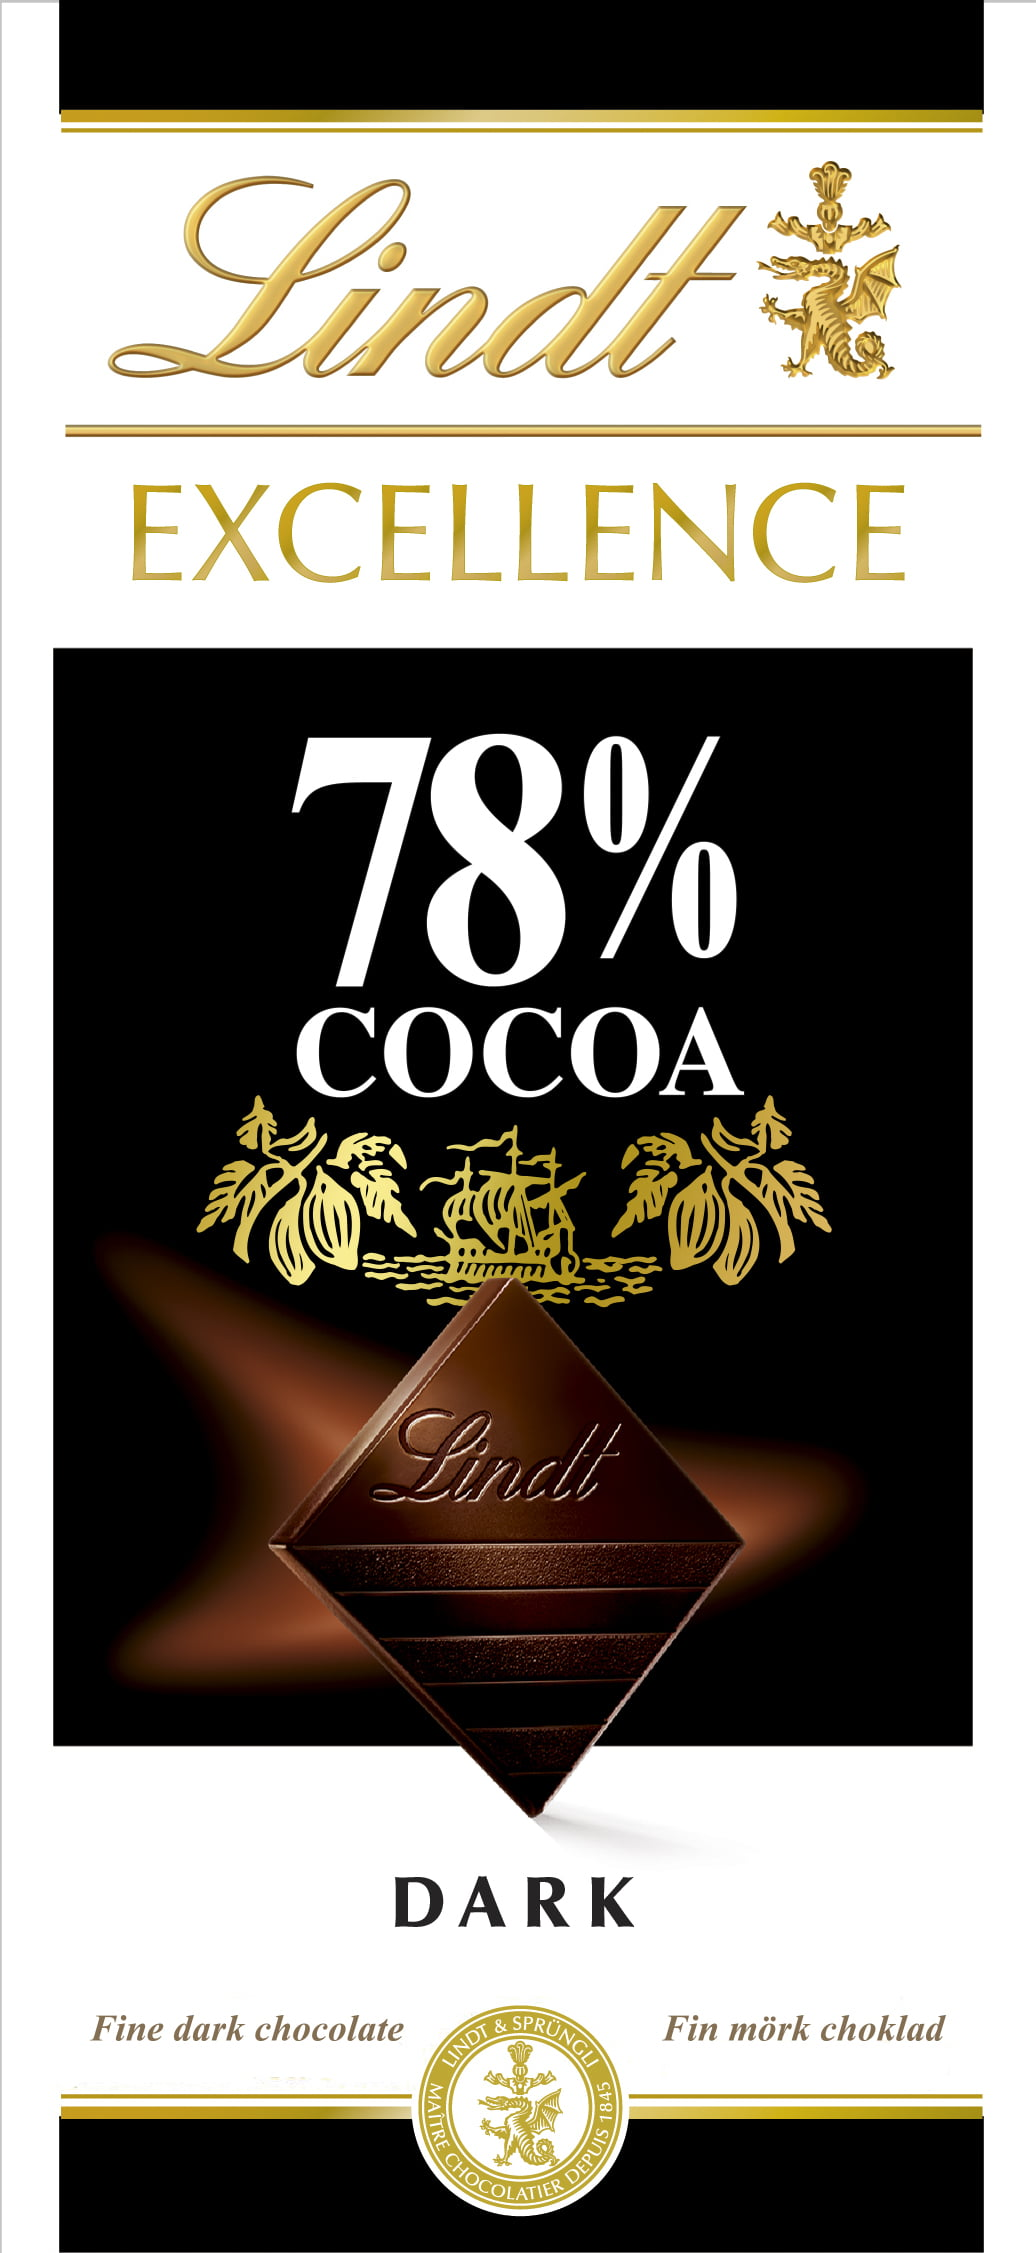 Chocolate Lindt Excellence 78% Cocoa (Dark) 100g